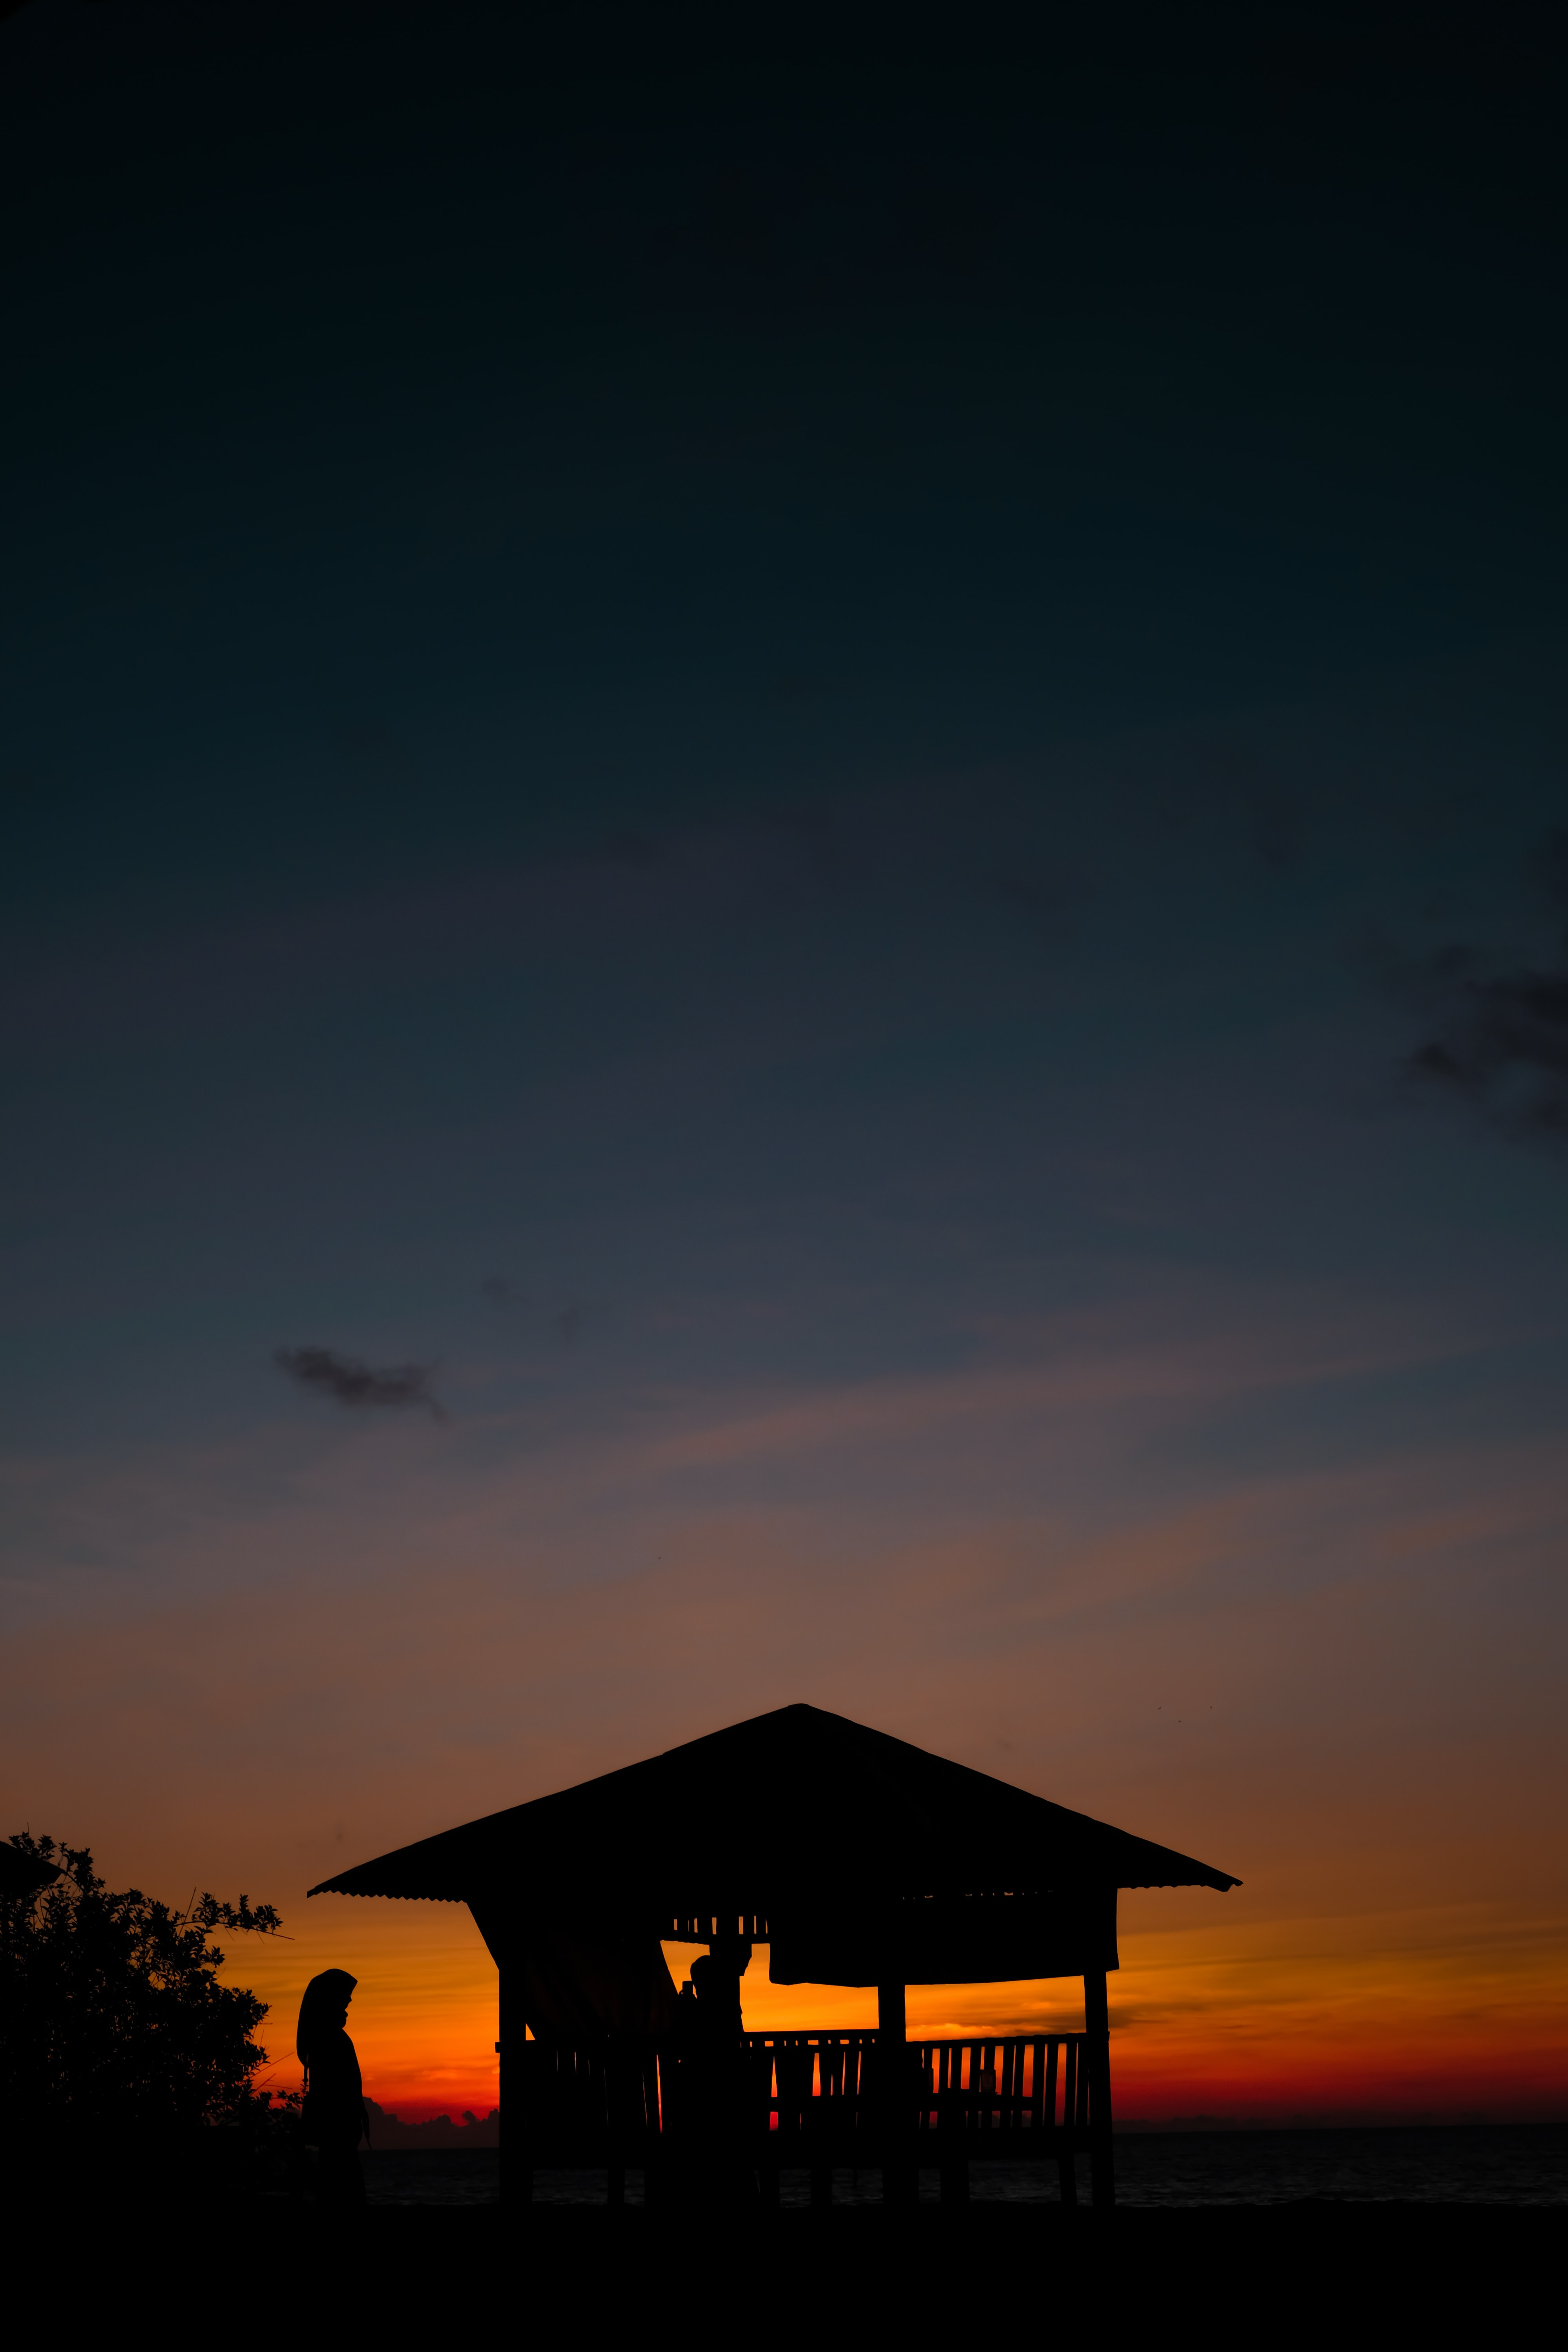 silhouette of gazebo during sunset